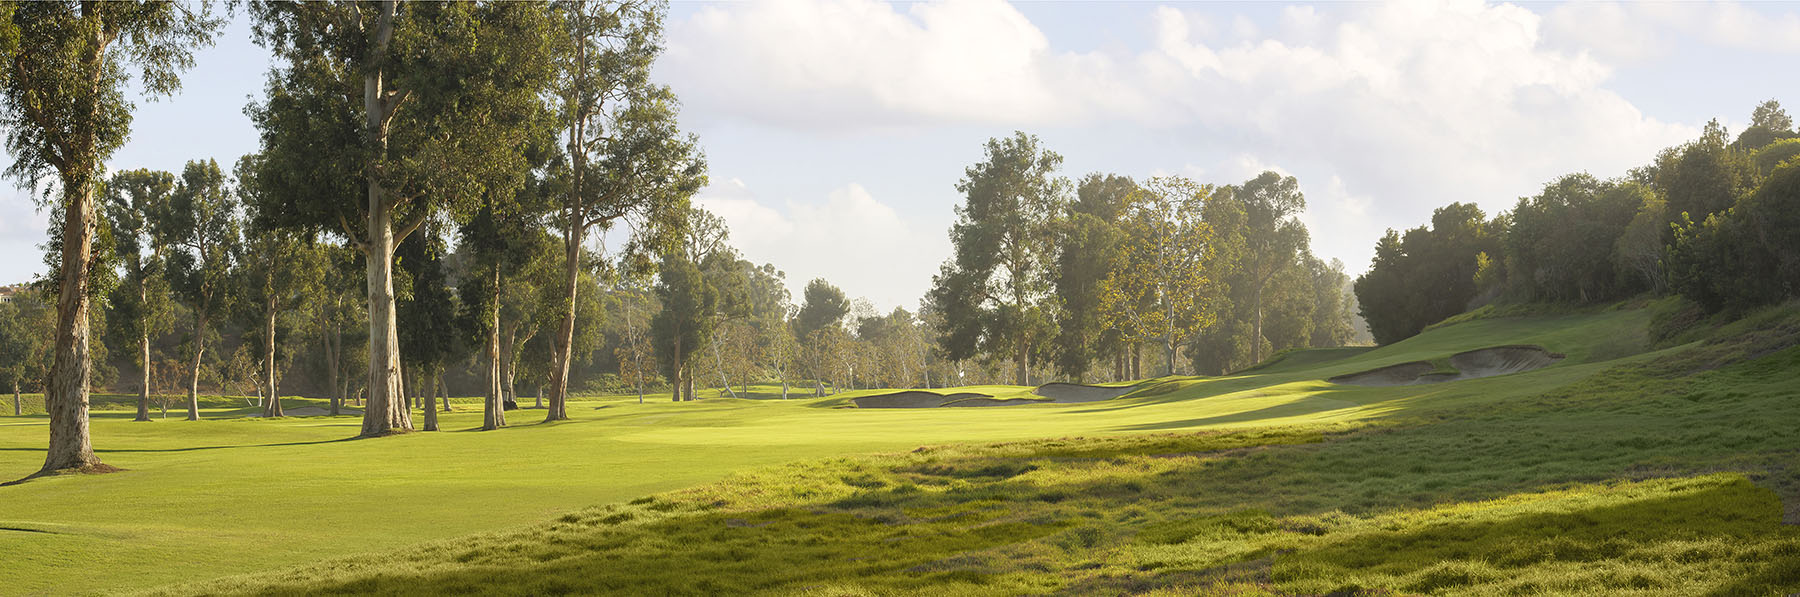 Golf Course Image - Riviera Country Club No. 4